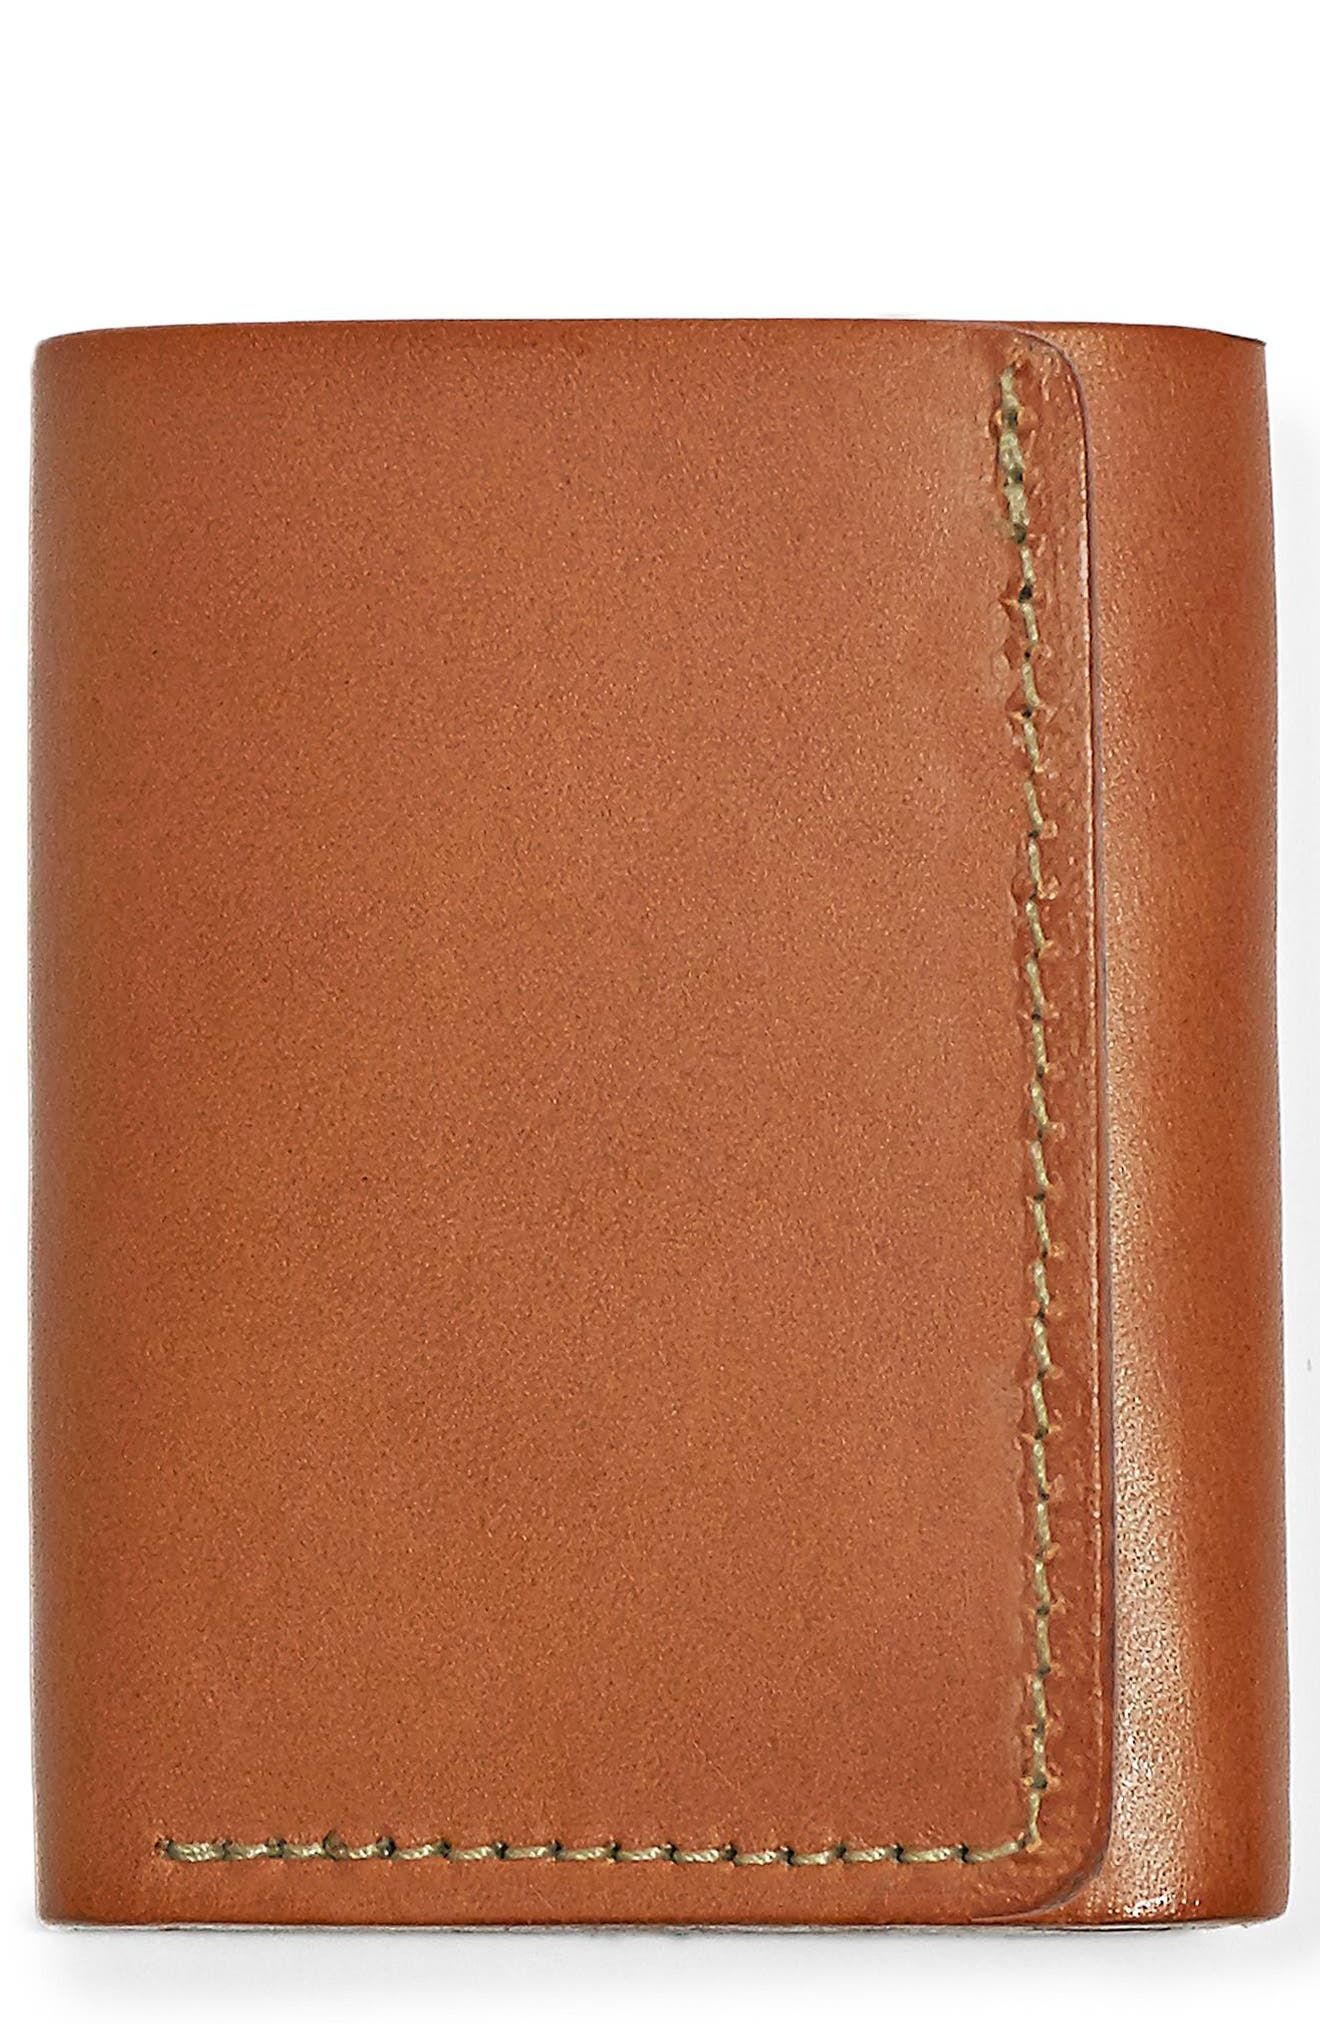 Filson Leather Trifold Leather Wallet